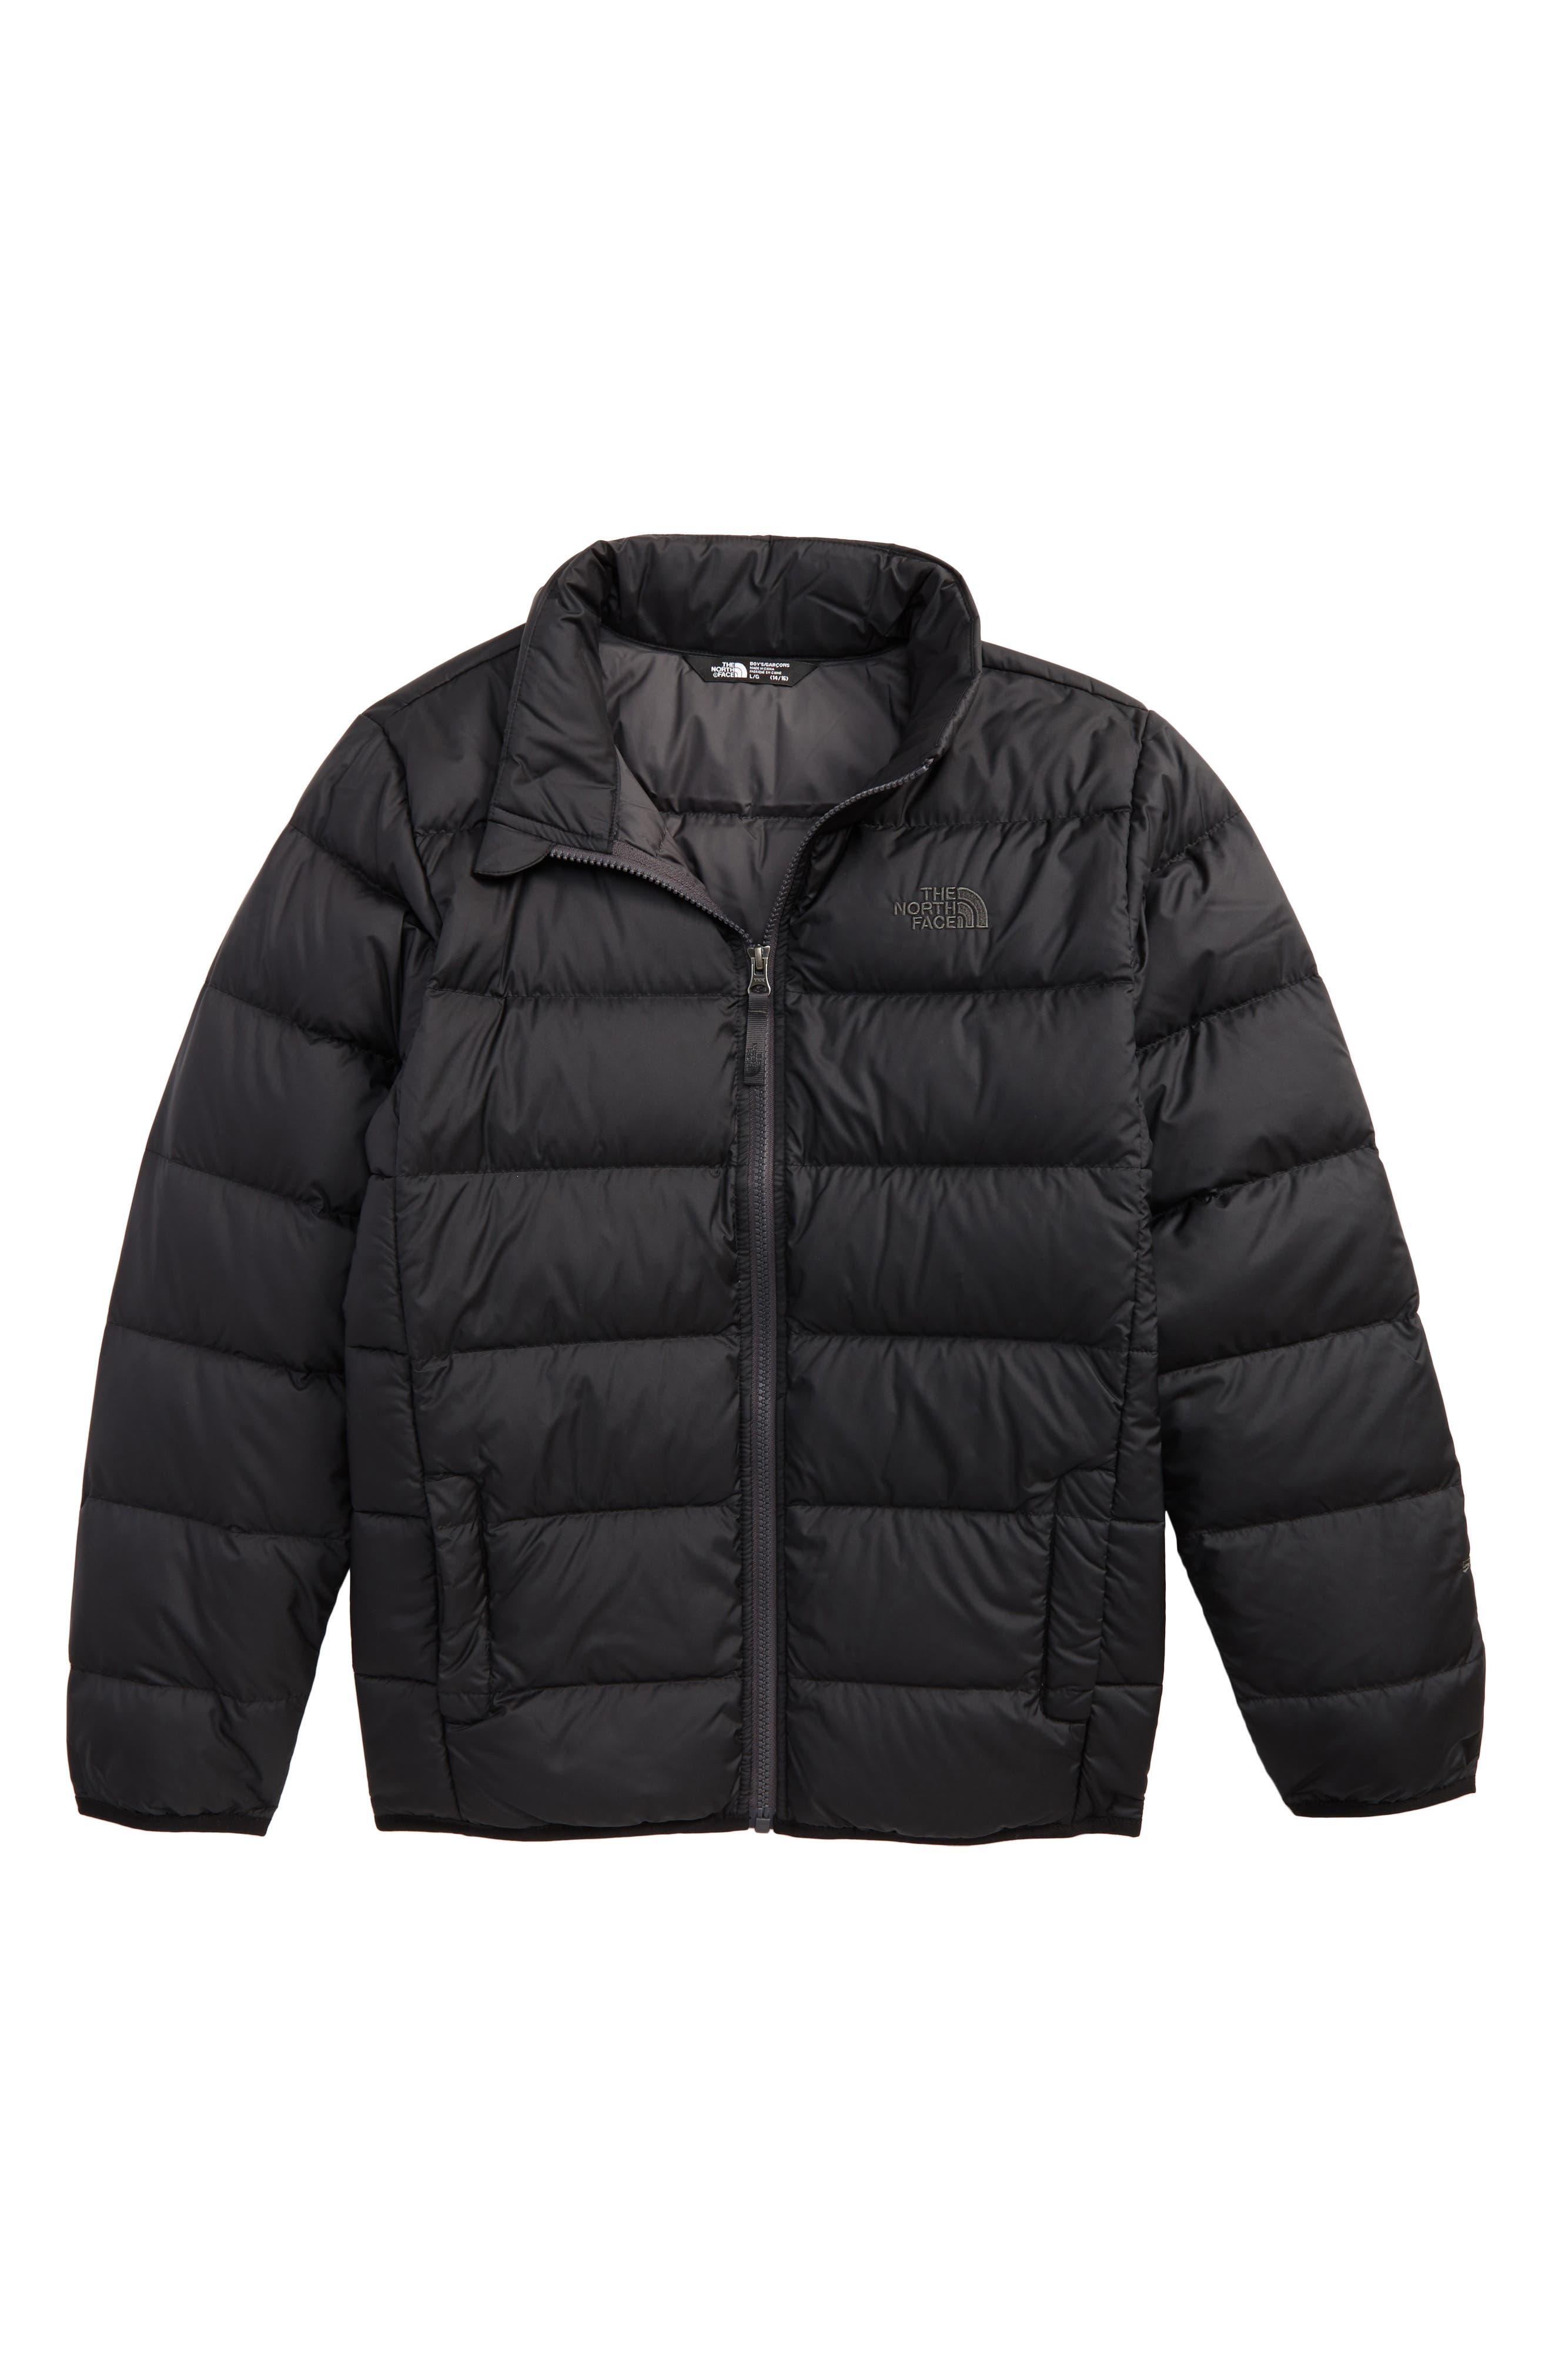 Alternate Image 1 Selected - The North Face Andes Water Repellent 550-Fill Power Down Jacket (Big Boys)